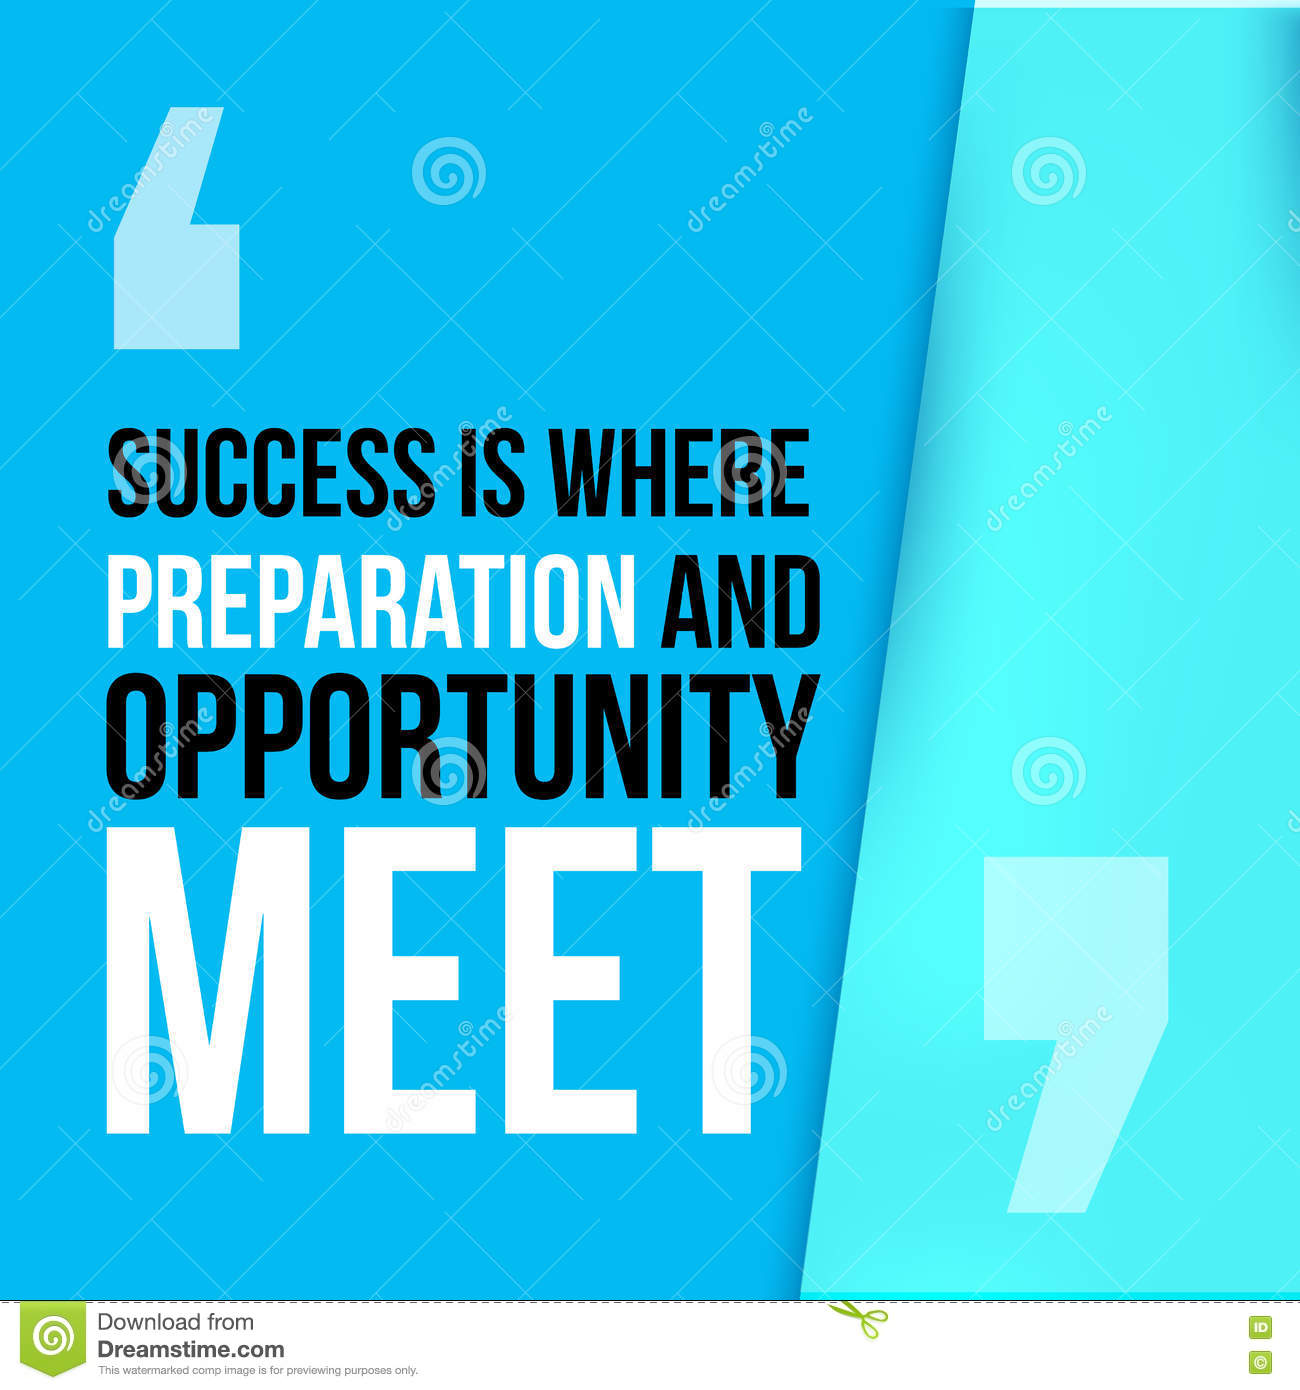 Quote Success Is When Preparation Meets Opportunity: Success Where Preparation And Opportunity Meet. Achieve